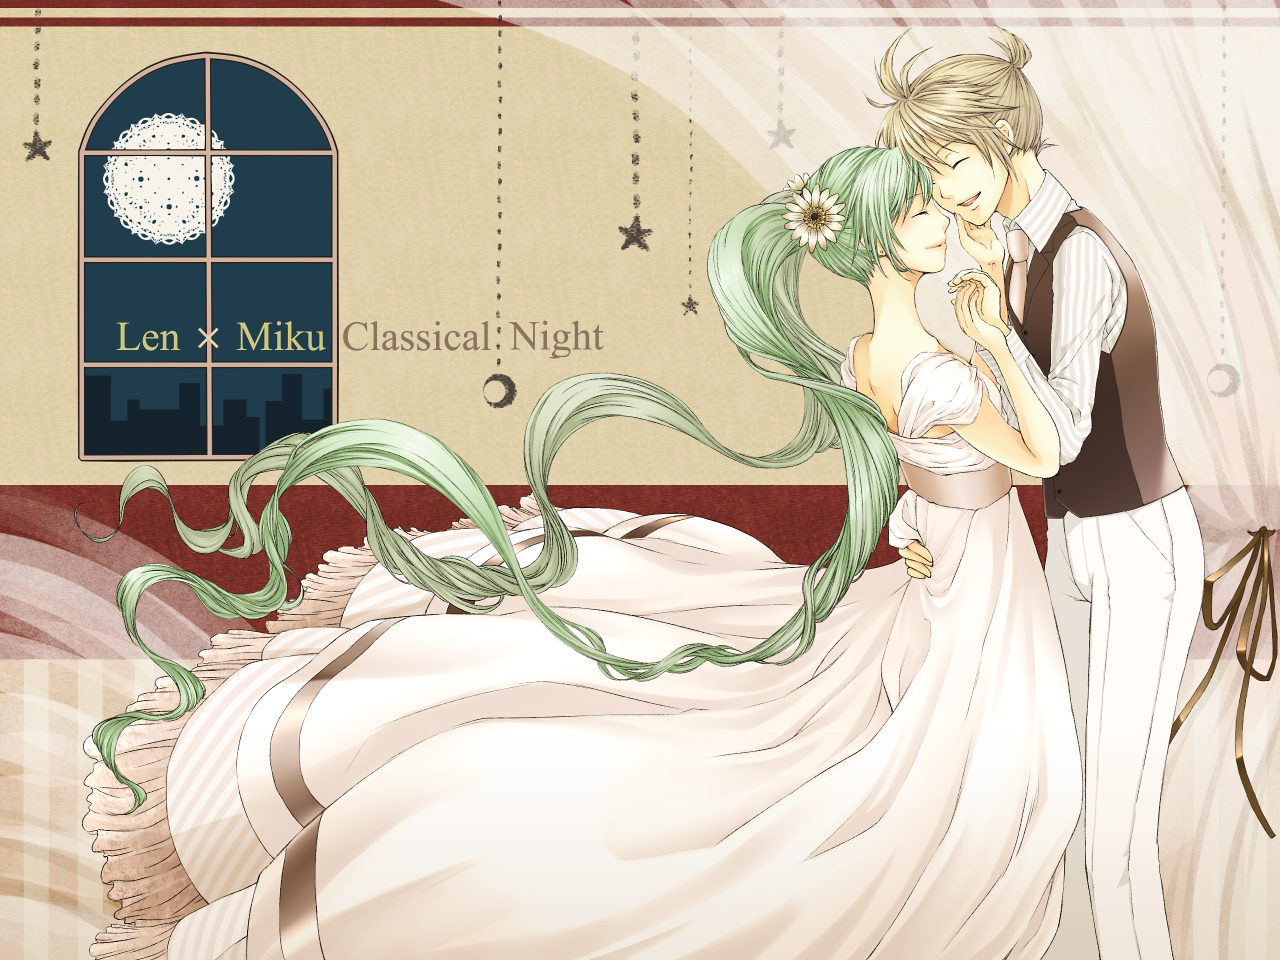 aliasing blonde_hair dress flowers fuusha green_hair hatsune_miku kagamine_len male night ponytail twintails vocaloid